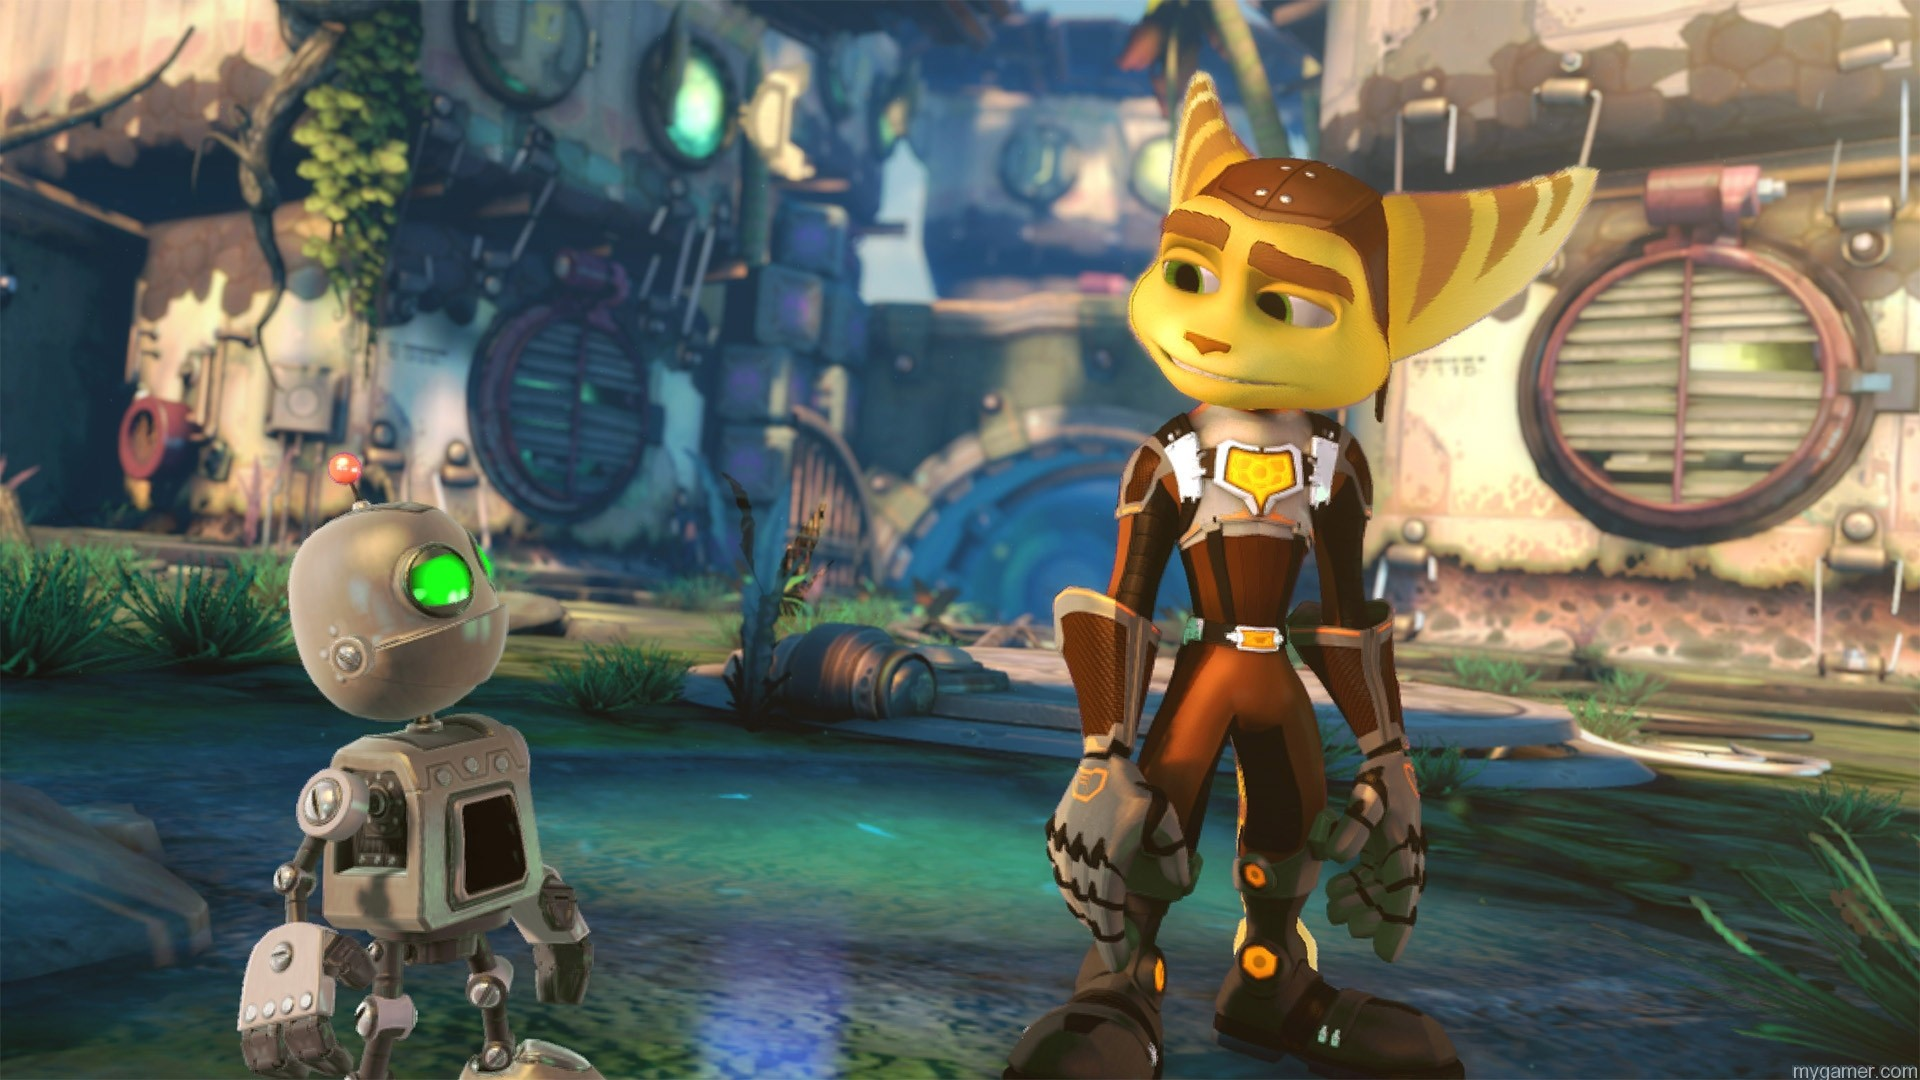 Graphics in Ratchet & Clank for PS4 Ratchet & Clank (PS4) Preview Ratchet & Clank (PS4) Preview Ratchet Clank Preview